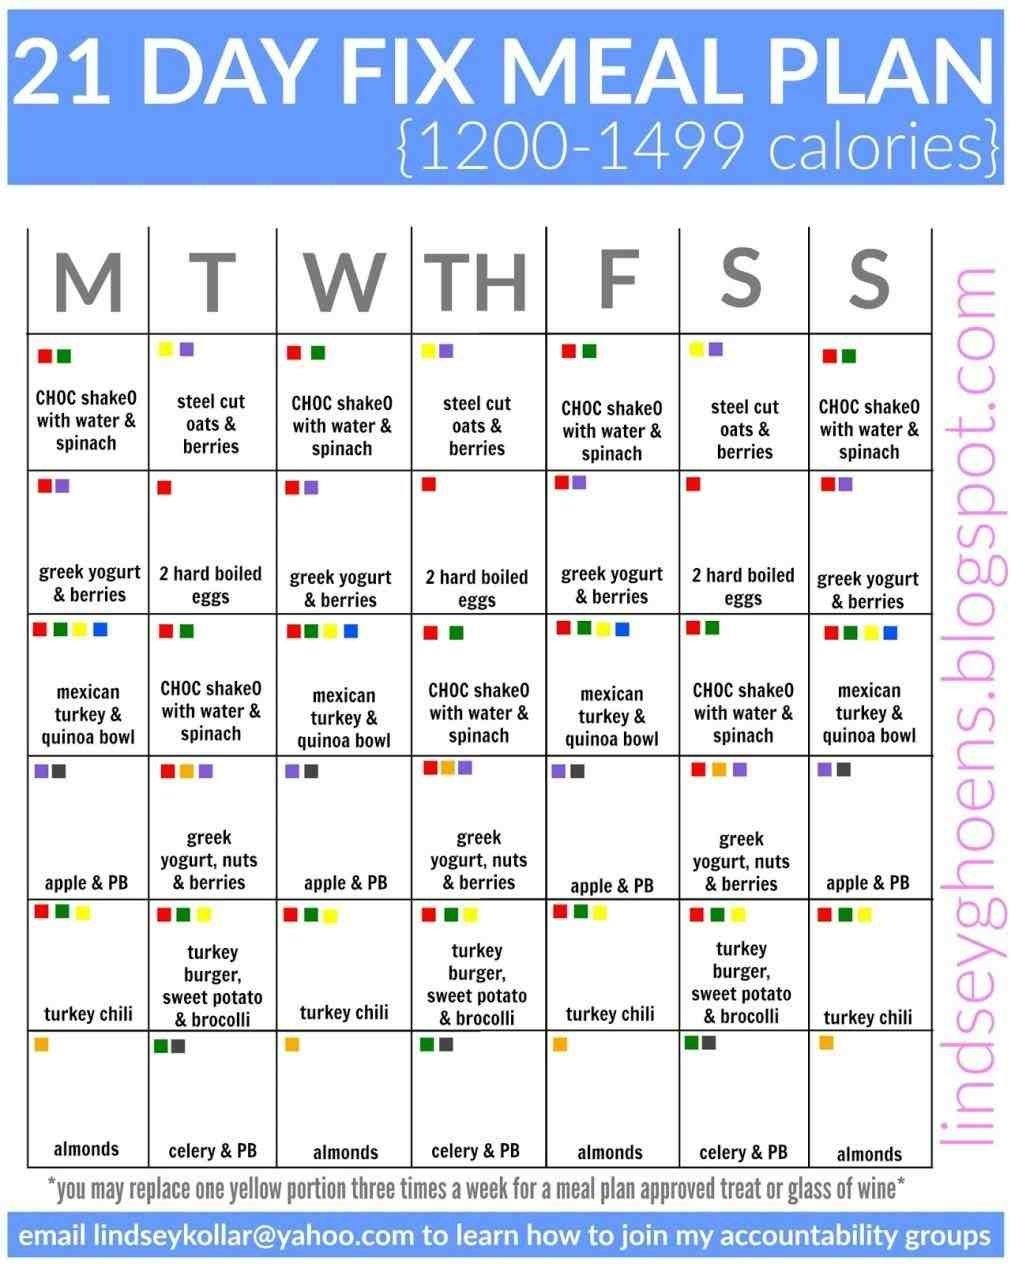 10 Unique 1200 Calorie Diet Menu Ideas food calorie diet meal plans 1200 calories day per menu health 2020